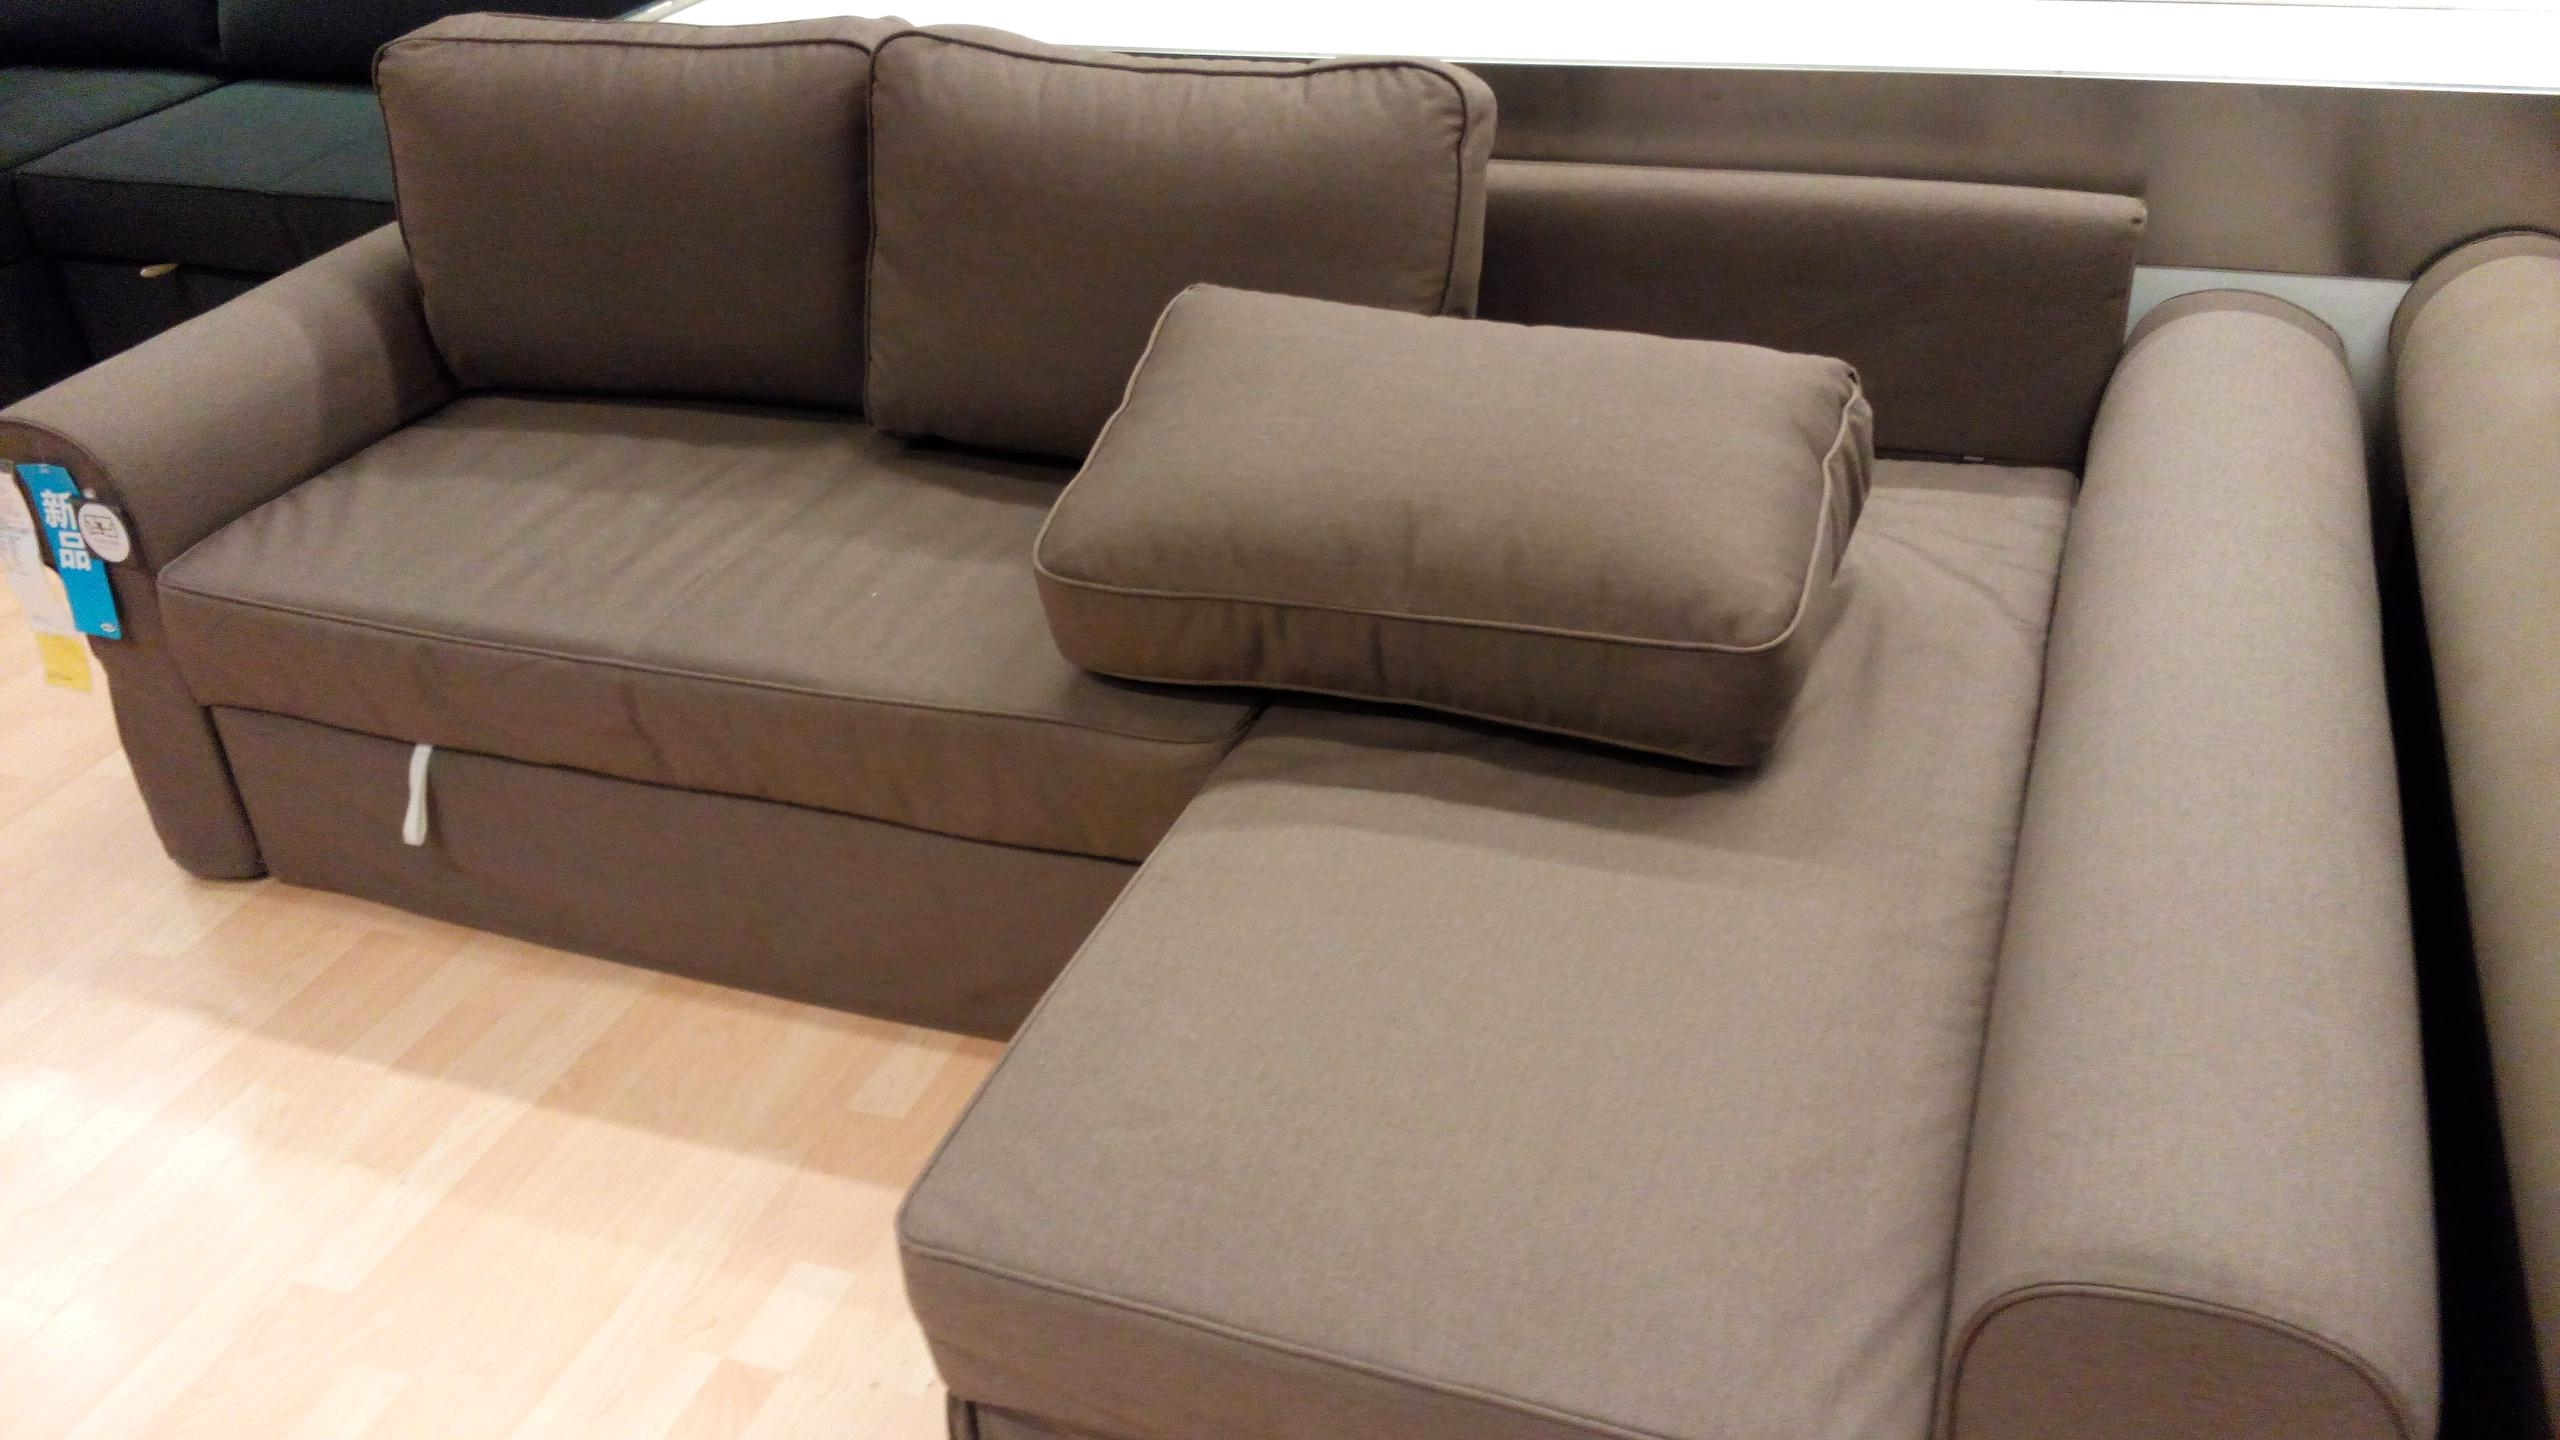 Furniture: Big Choice Of Styles And Colors Futon Beds Ikea For With Regard To Sleeper Sofa Sectional Ikea (View 16 of 20)